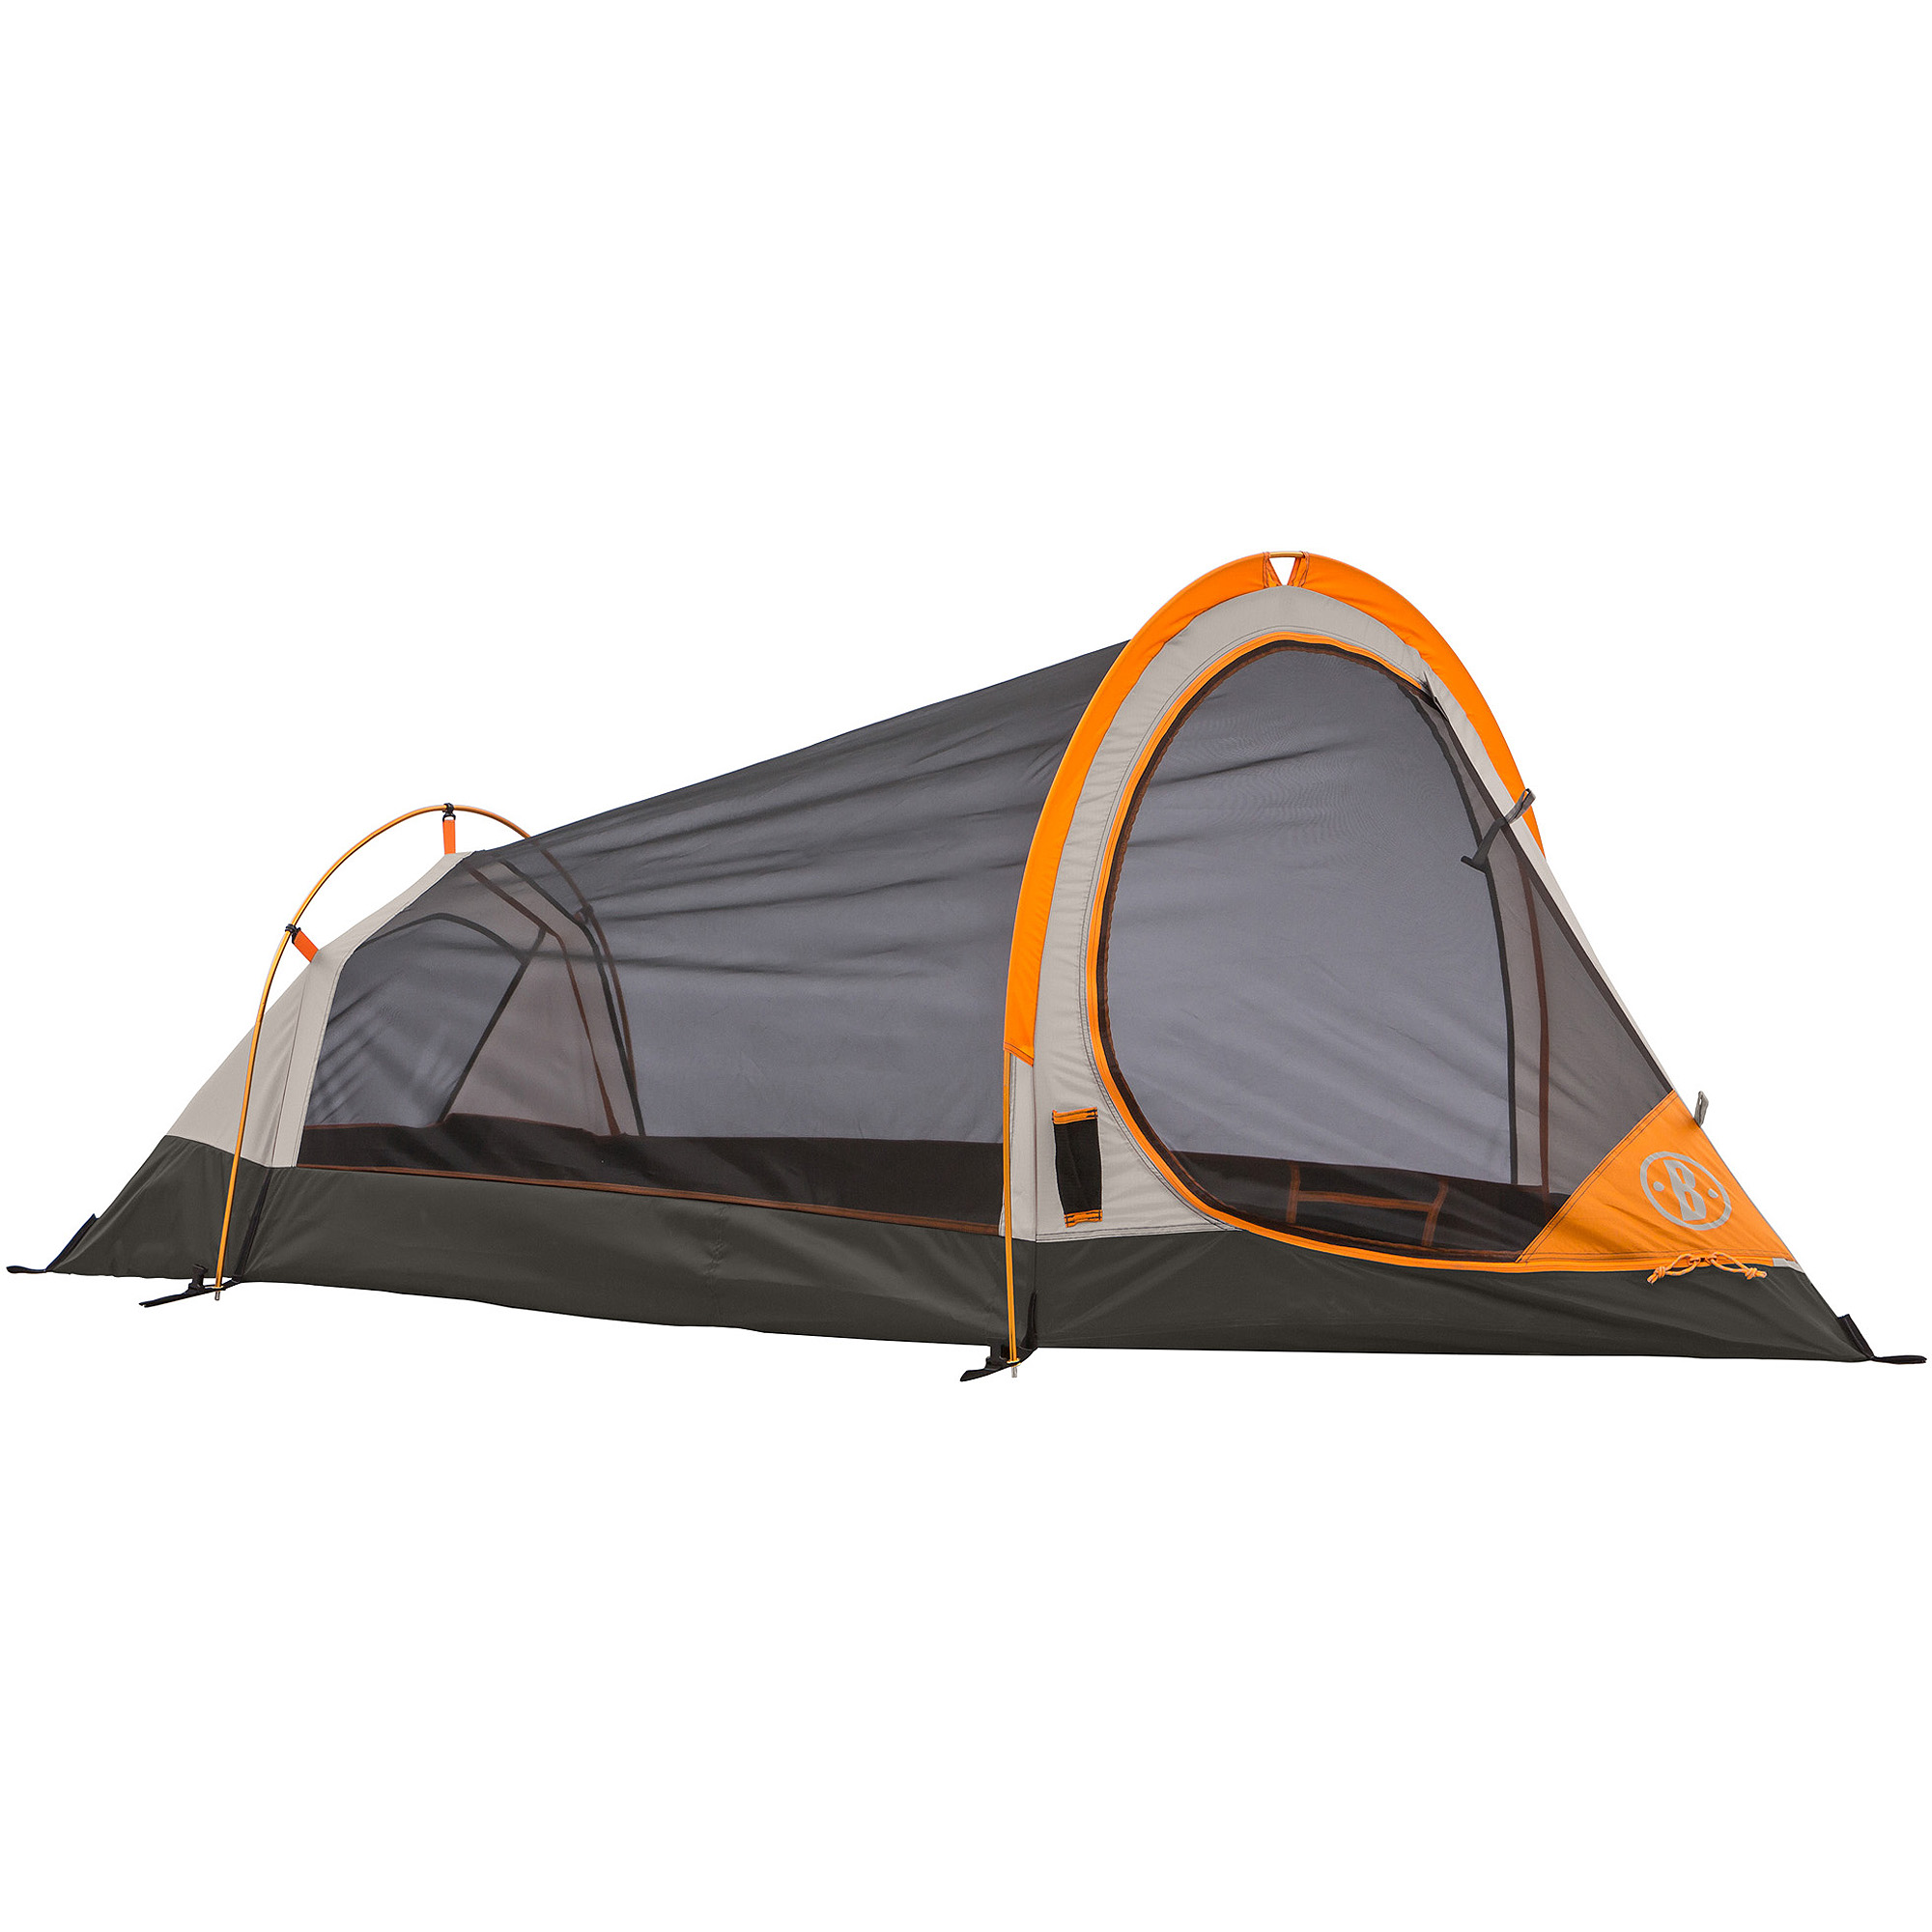 Bushnell Roam Series 8.5u0027 x 3u0027 Backpacking Tent Sleeps 1 - Walmart.com  sc 1 st  Walmart : compact tents for backpacking - memphite.com